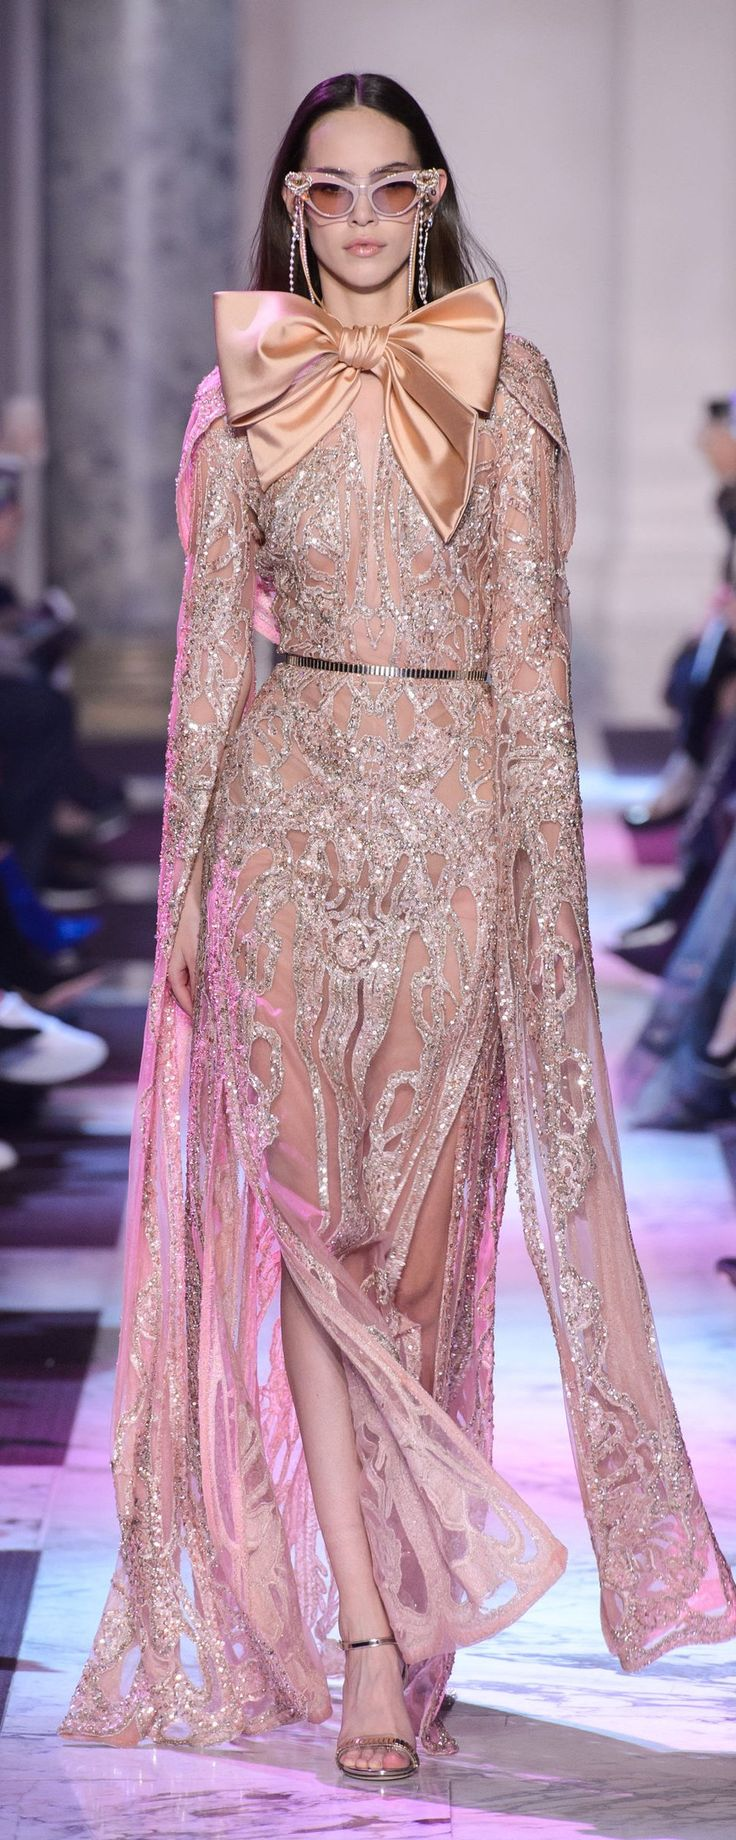 514 best Elie Saab images on Pinterest | Couture fashion, Fashion ...